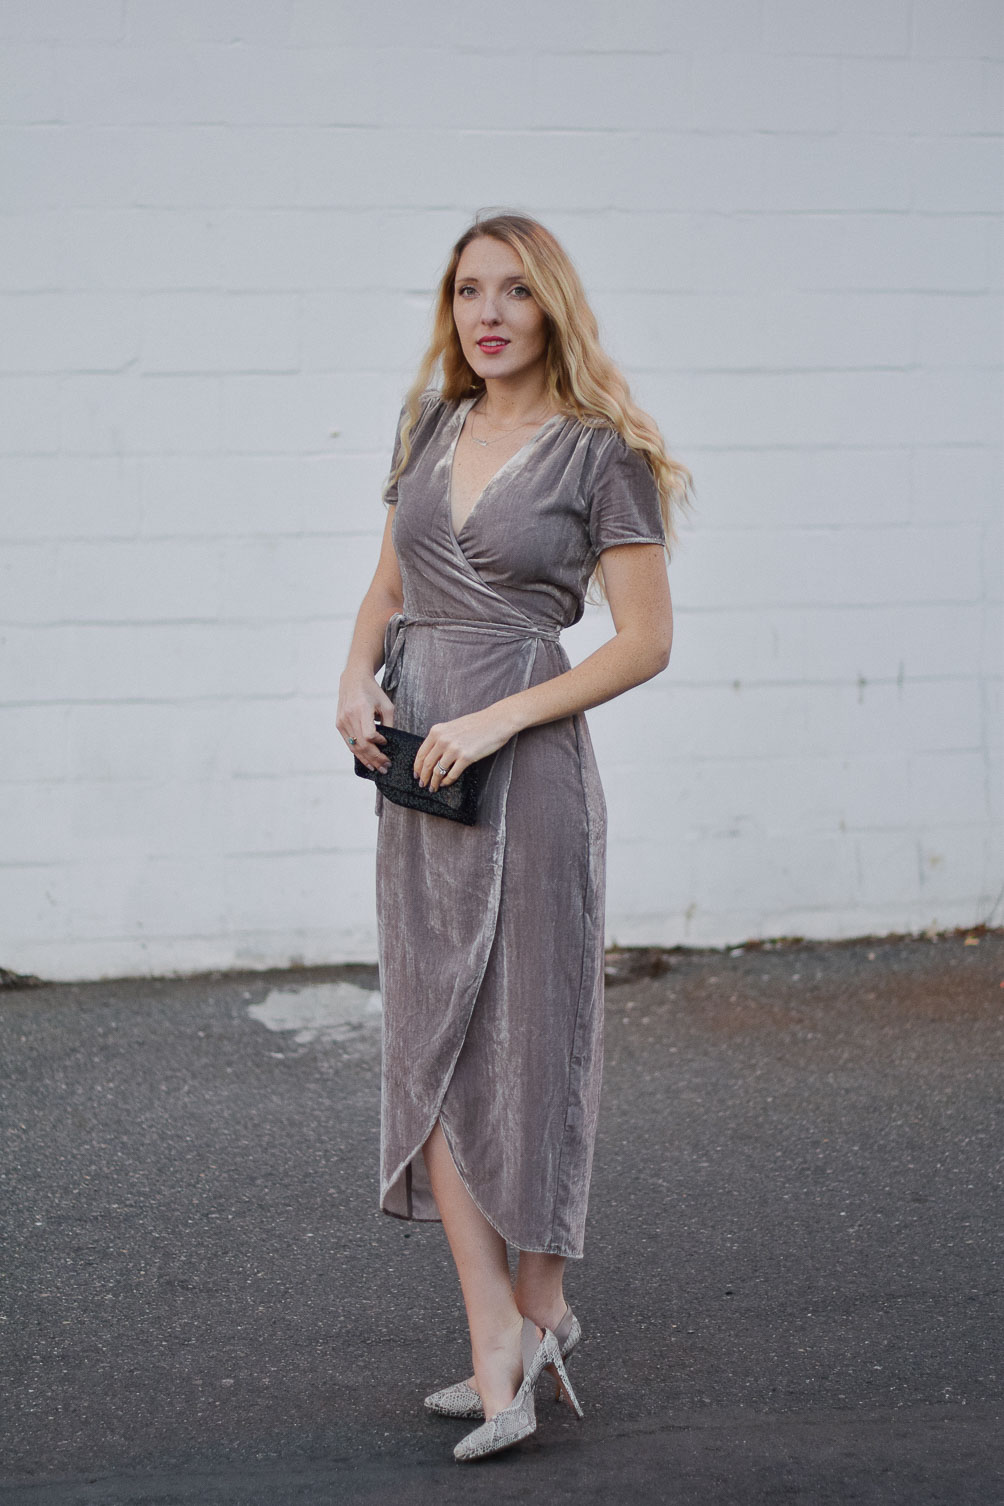 styling a metallic holiday dress party outfit with snakeskin heels and beaded clutch